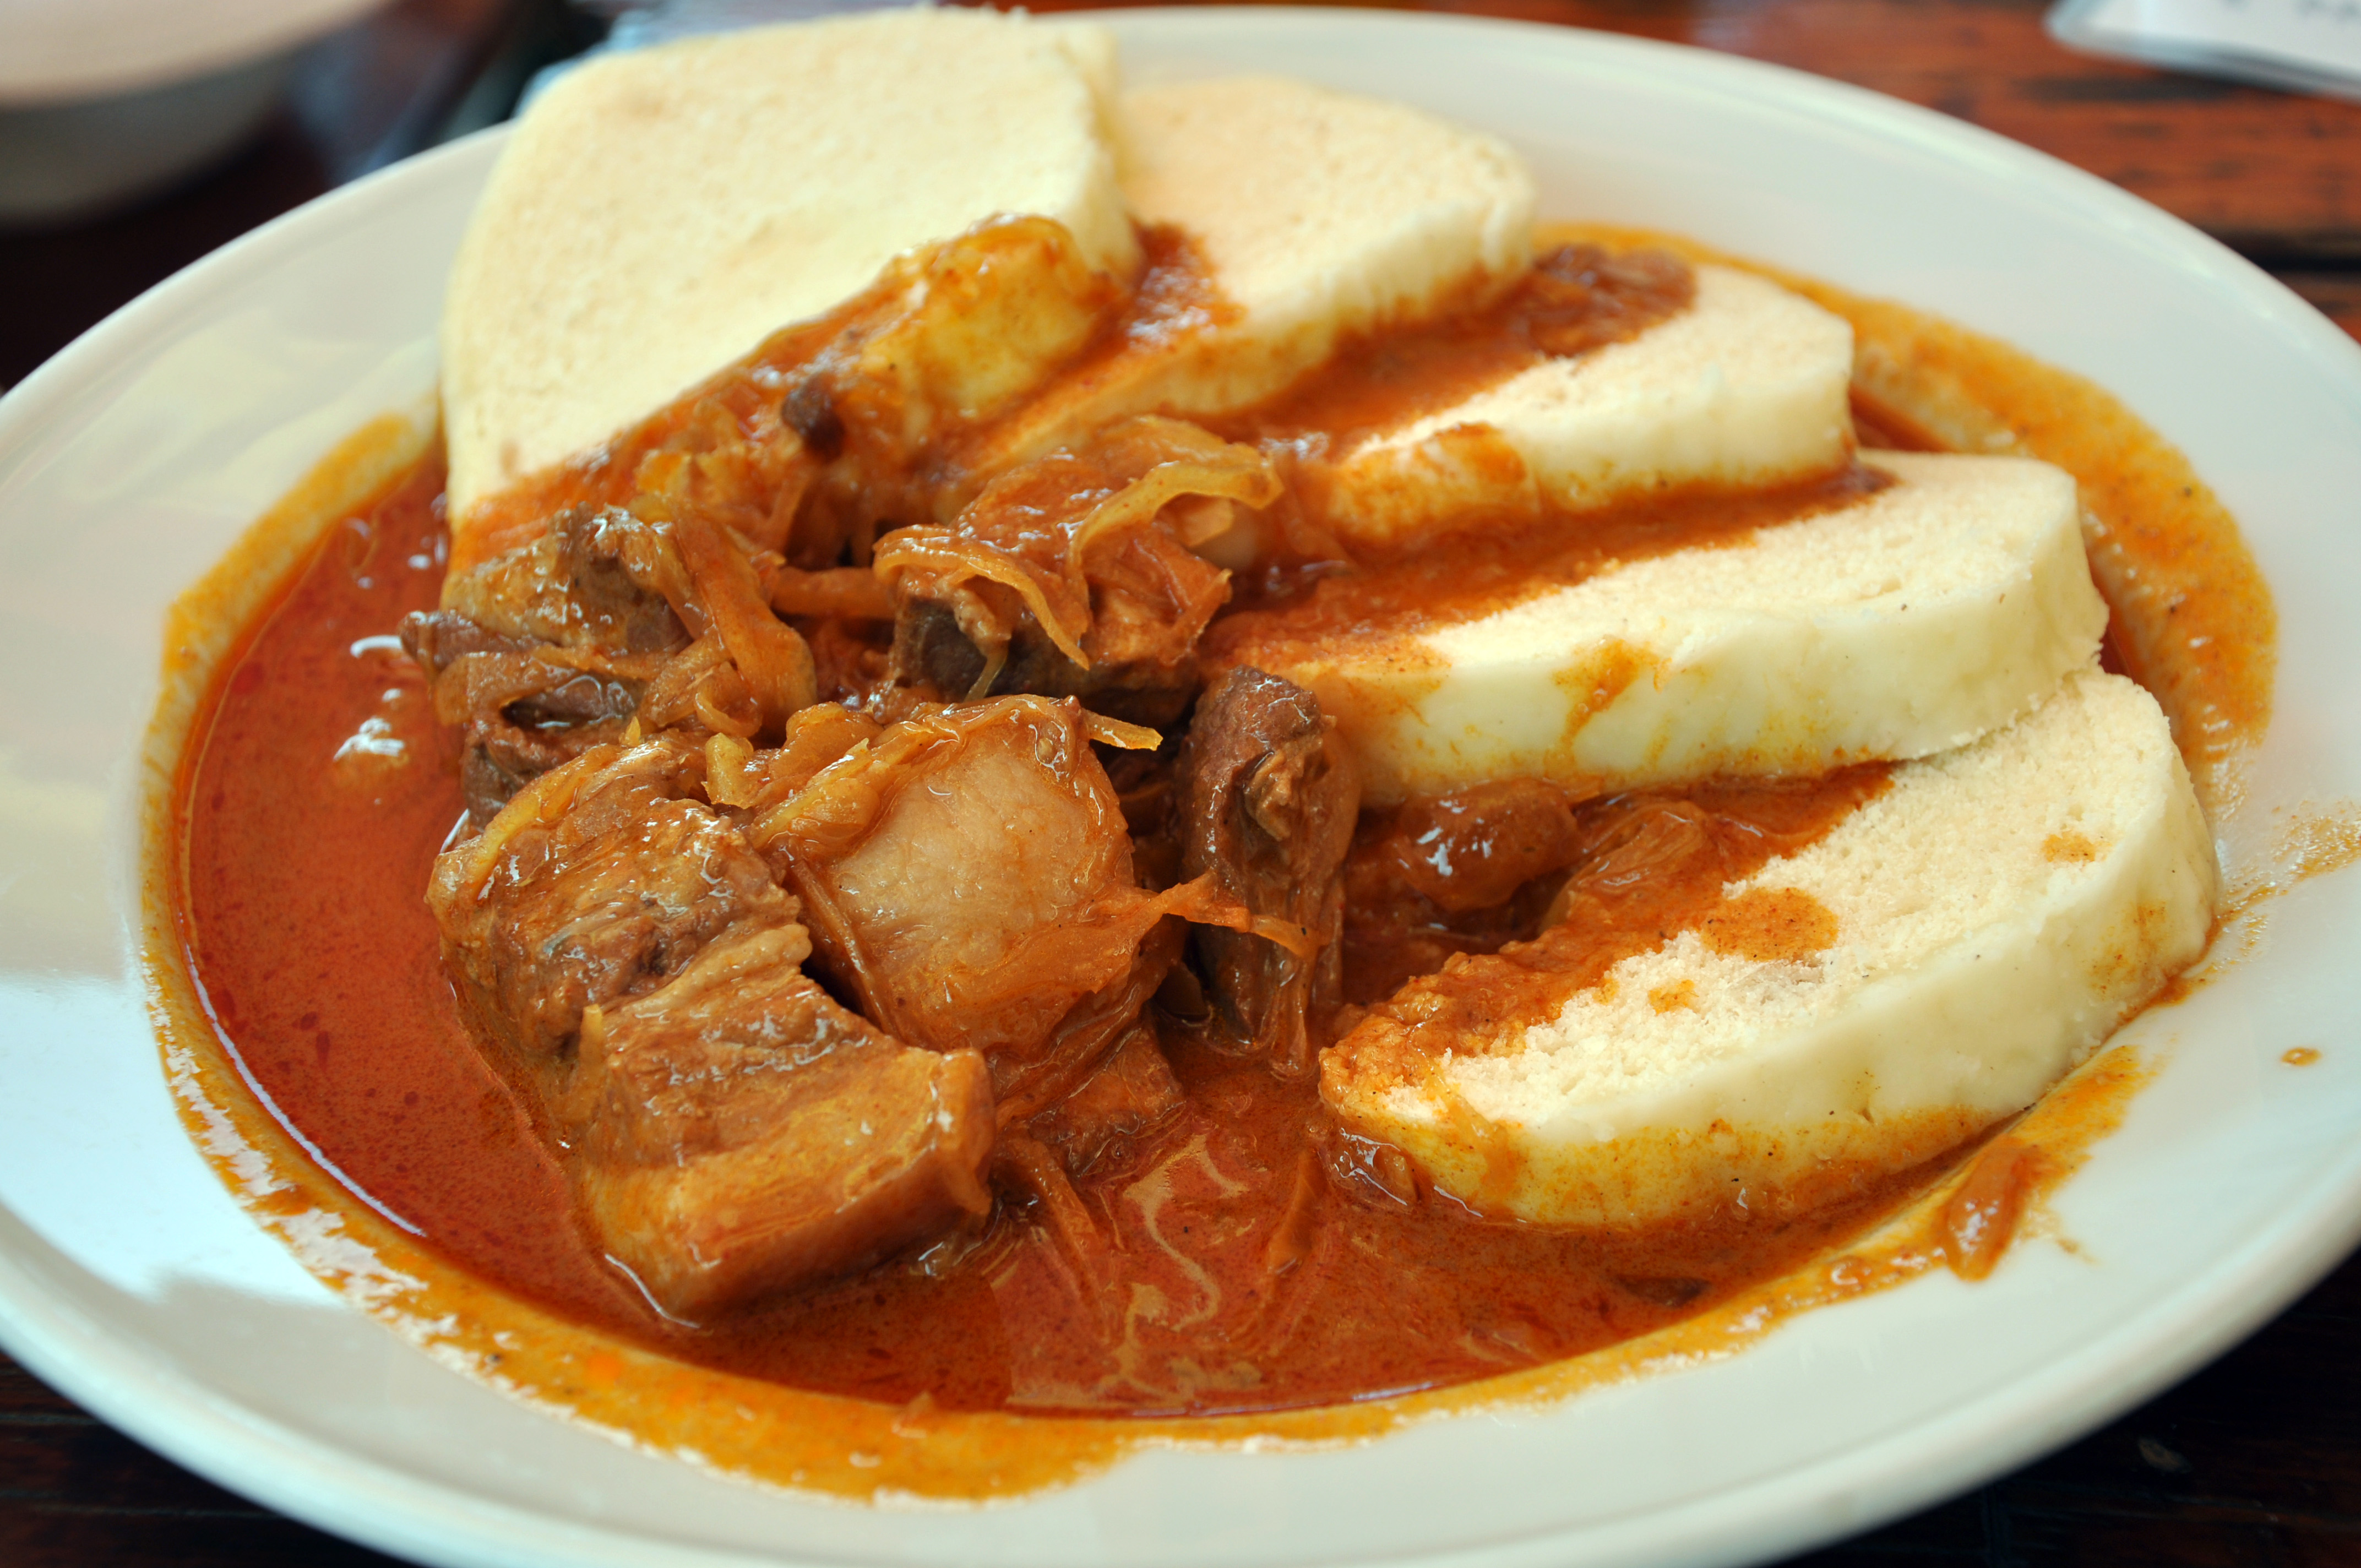 File:Szeged goulash from pork.jpg - Wikimedia Commons